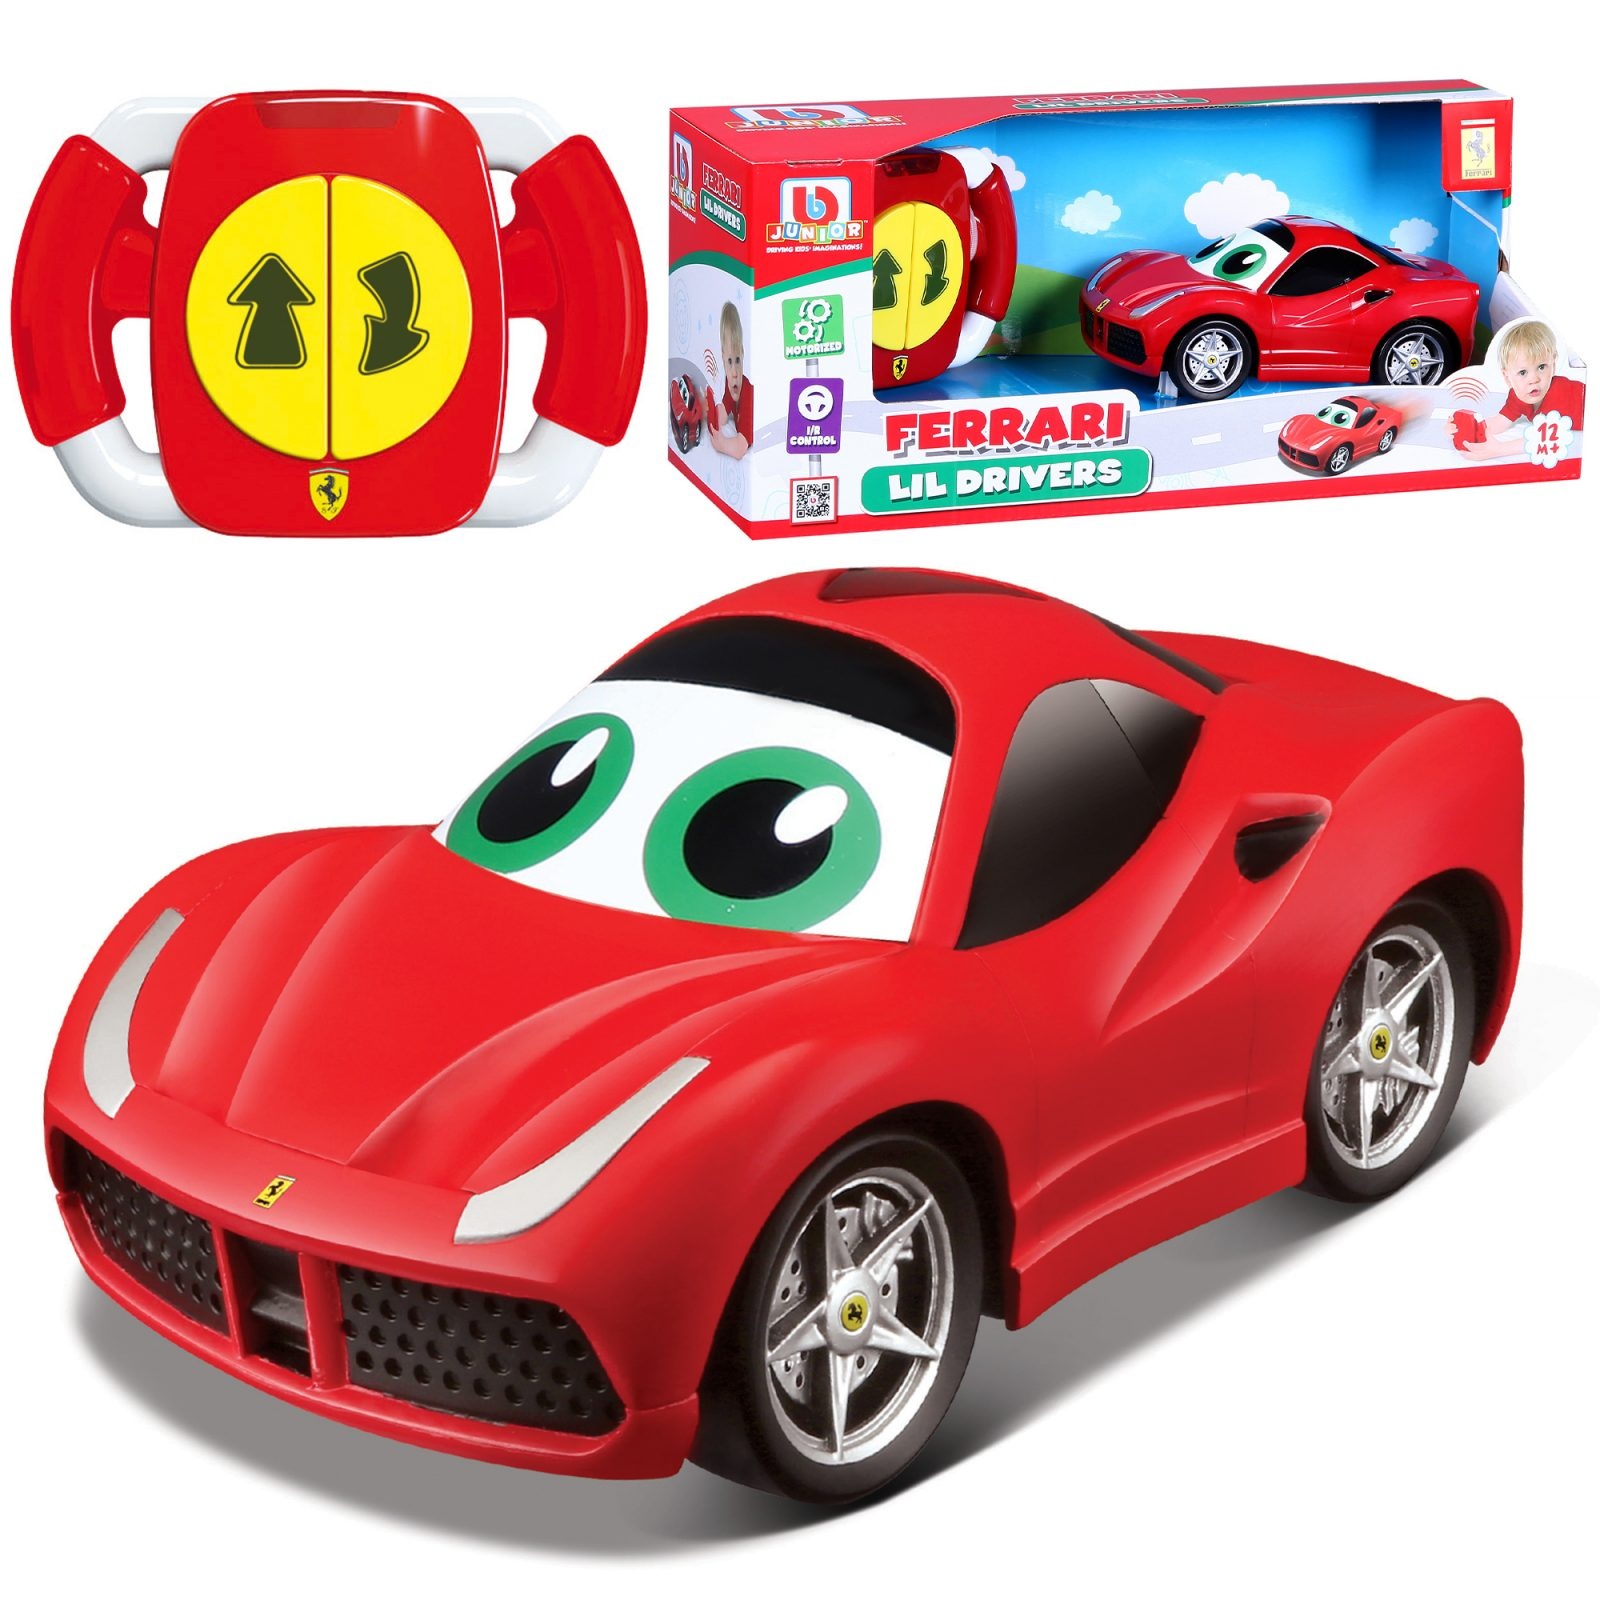 Dadsnet Toy Awards 2021 Winners Revealed, image1 1600x1600%, product-review%